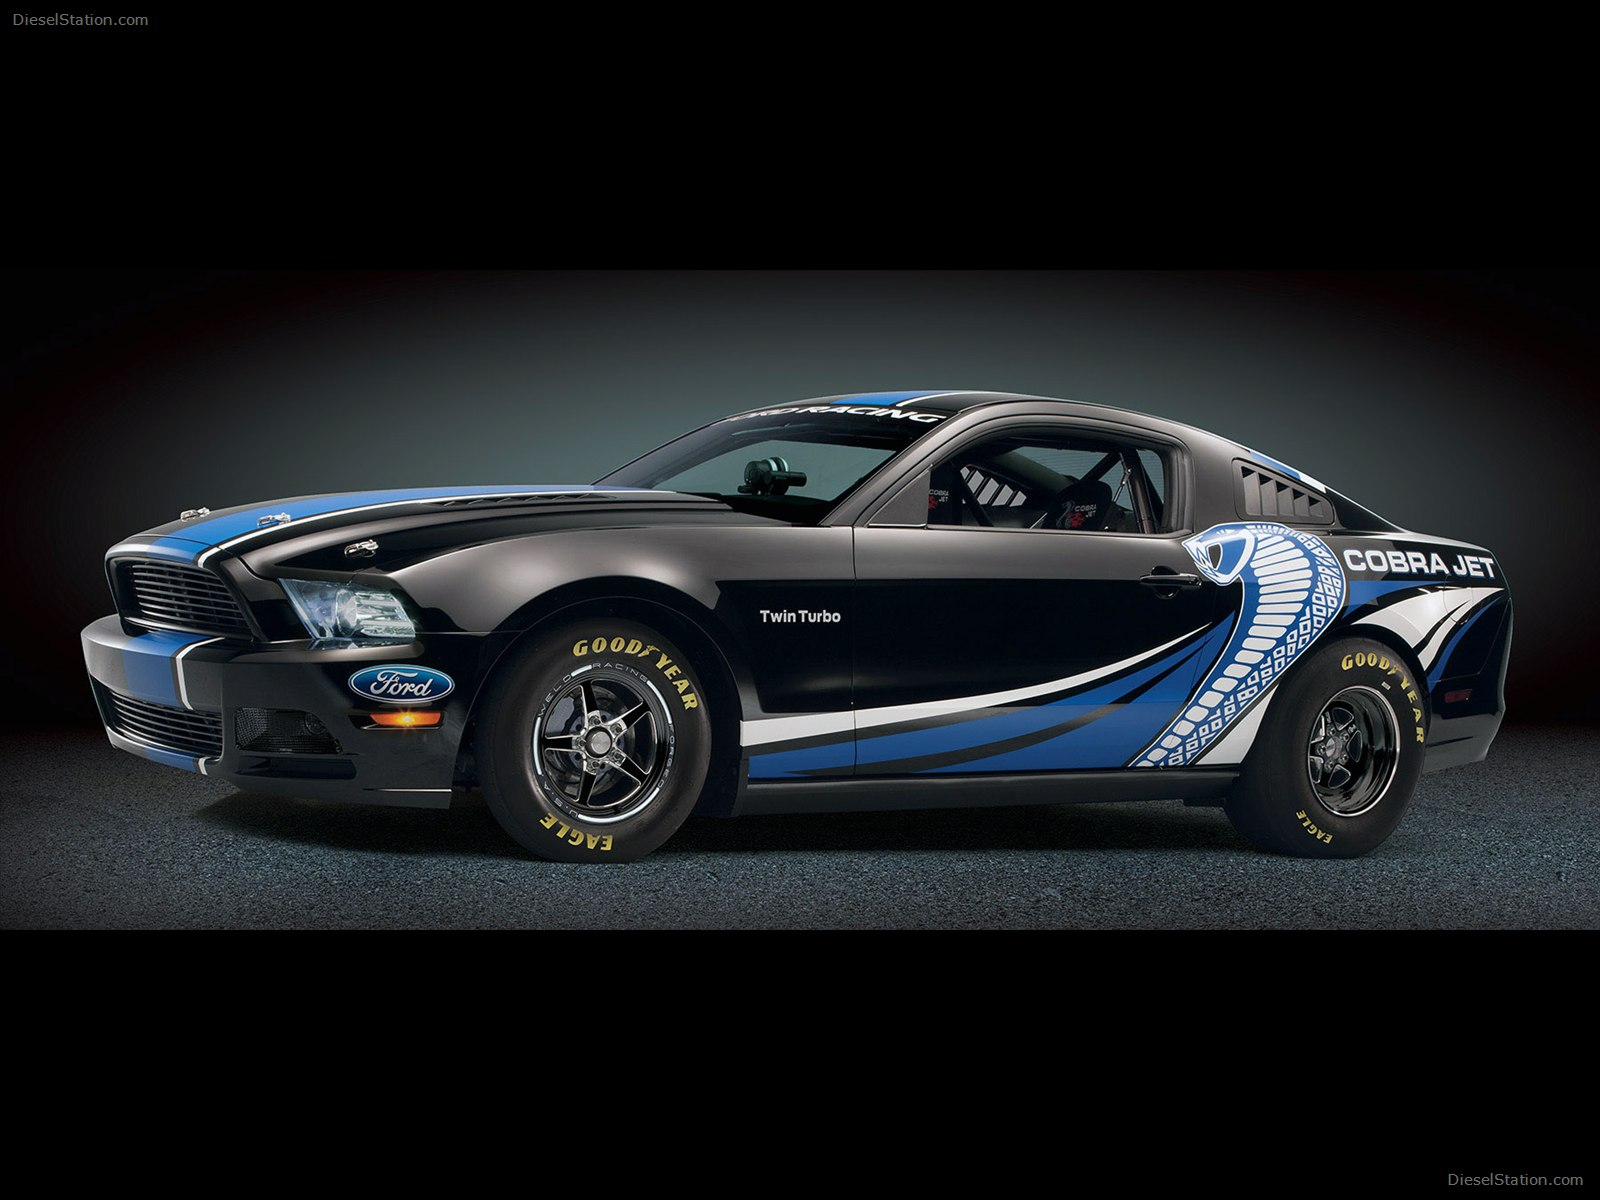 Ford Mustang Cobra Jet Twin Turbo Concept 2012 Exotic Car Image 10 of 1600x1200